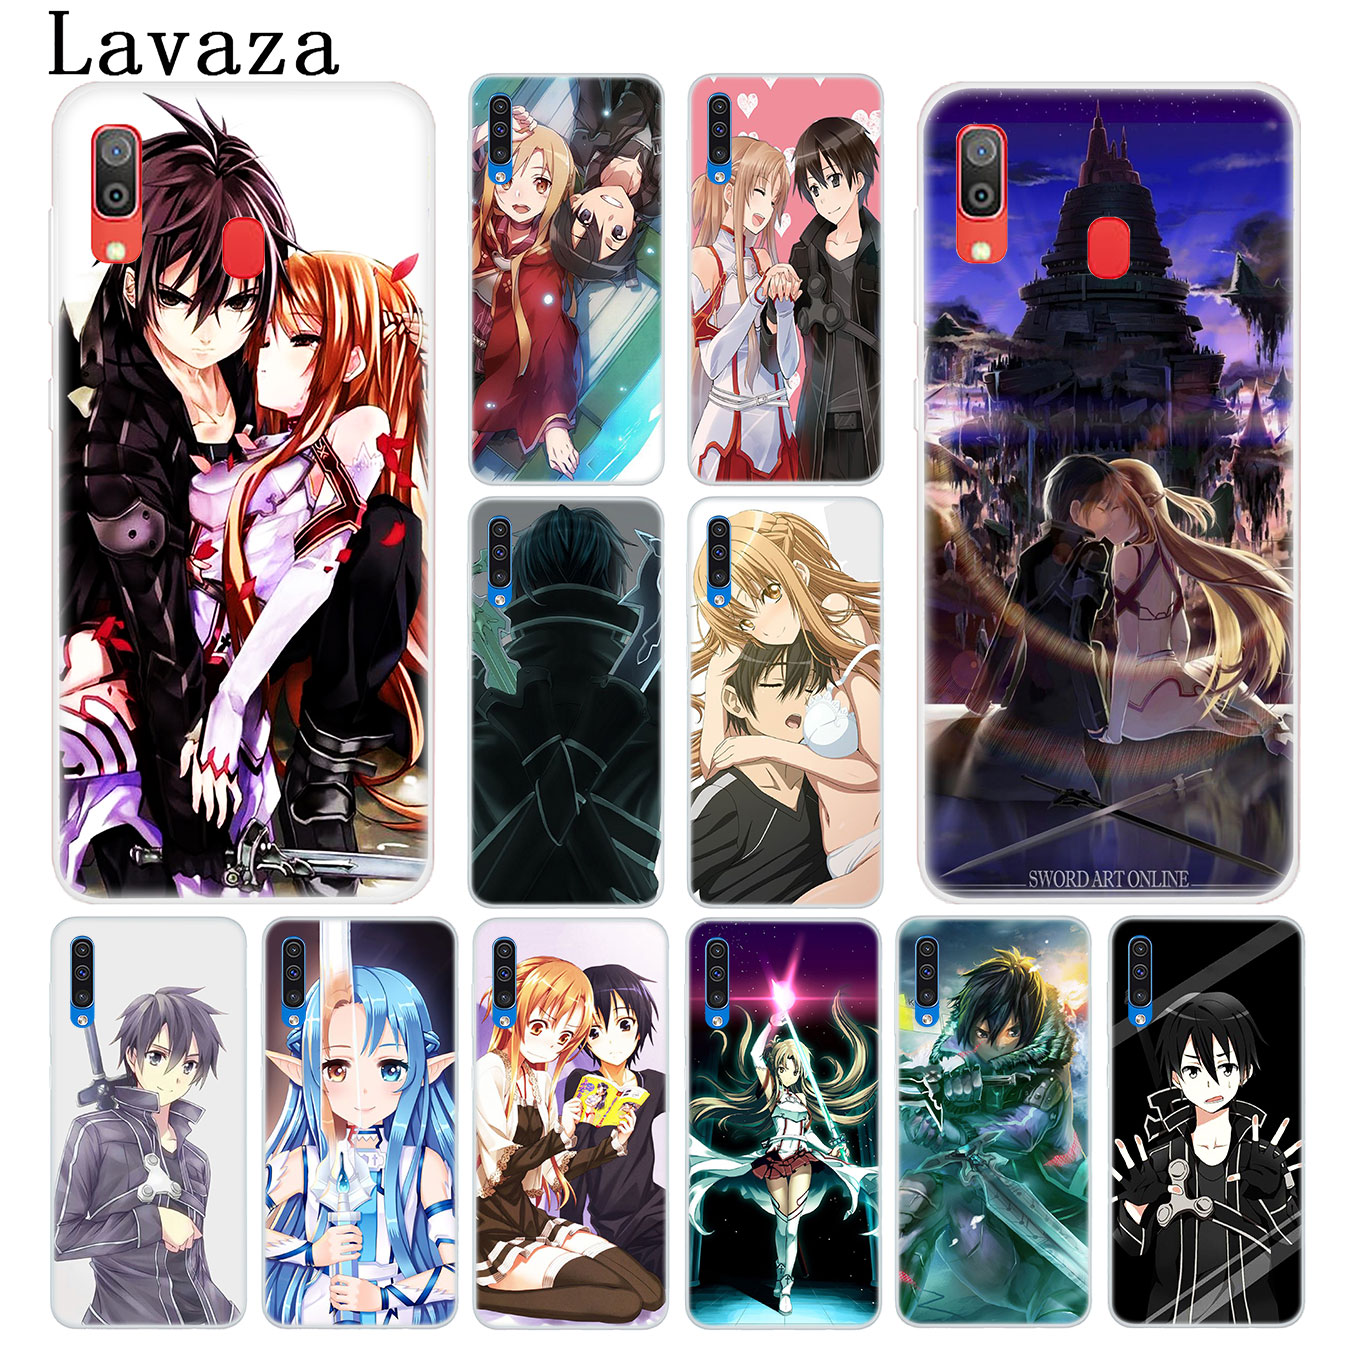 Special Section Lavaza Sword Art Online Hard Transparent Phone Case For Samsung Galaxy M30 M20 M10 A10 A30 A40 A50 A70 Cover Skilful Manufacture Phone Bags & Cases